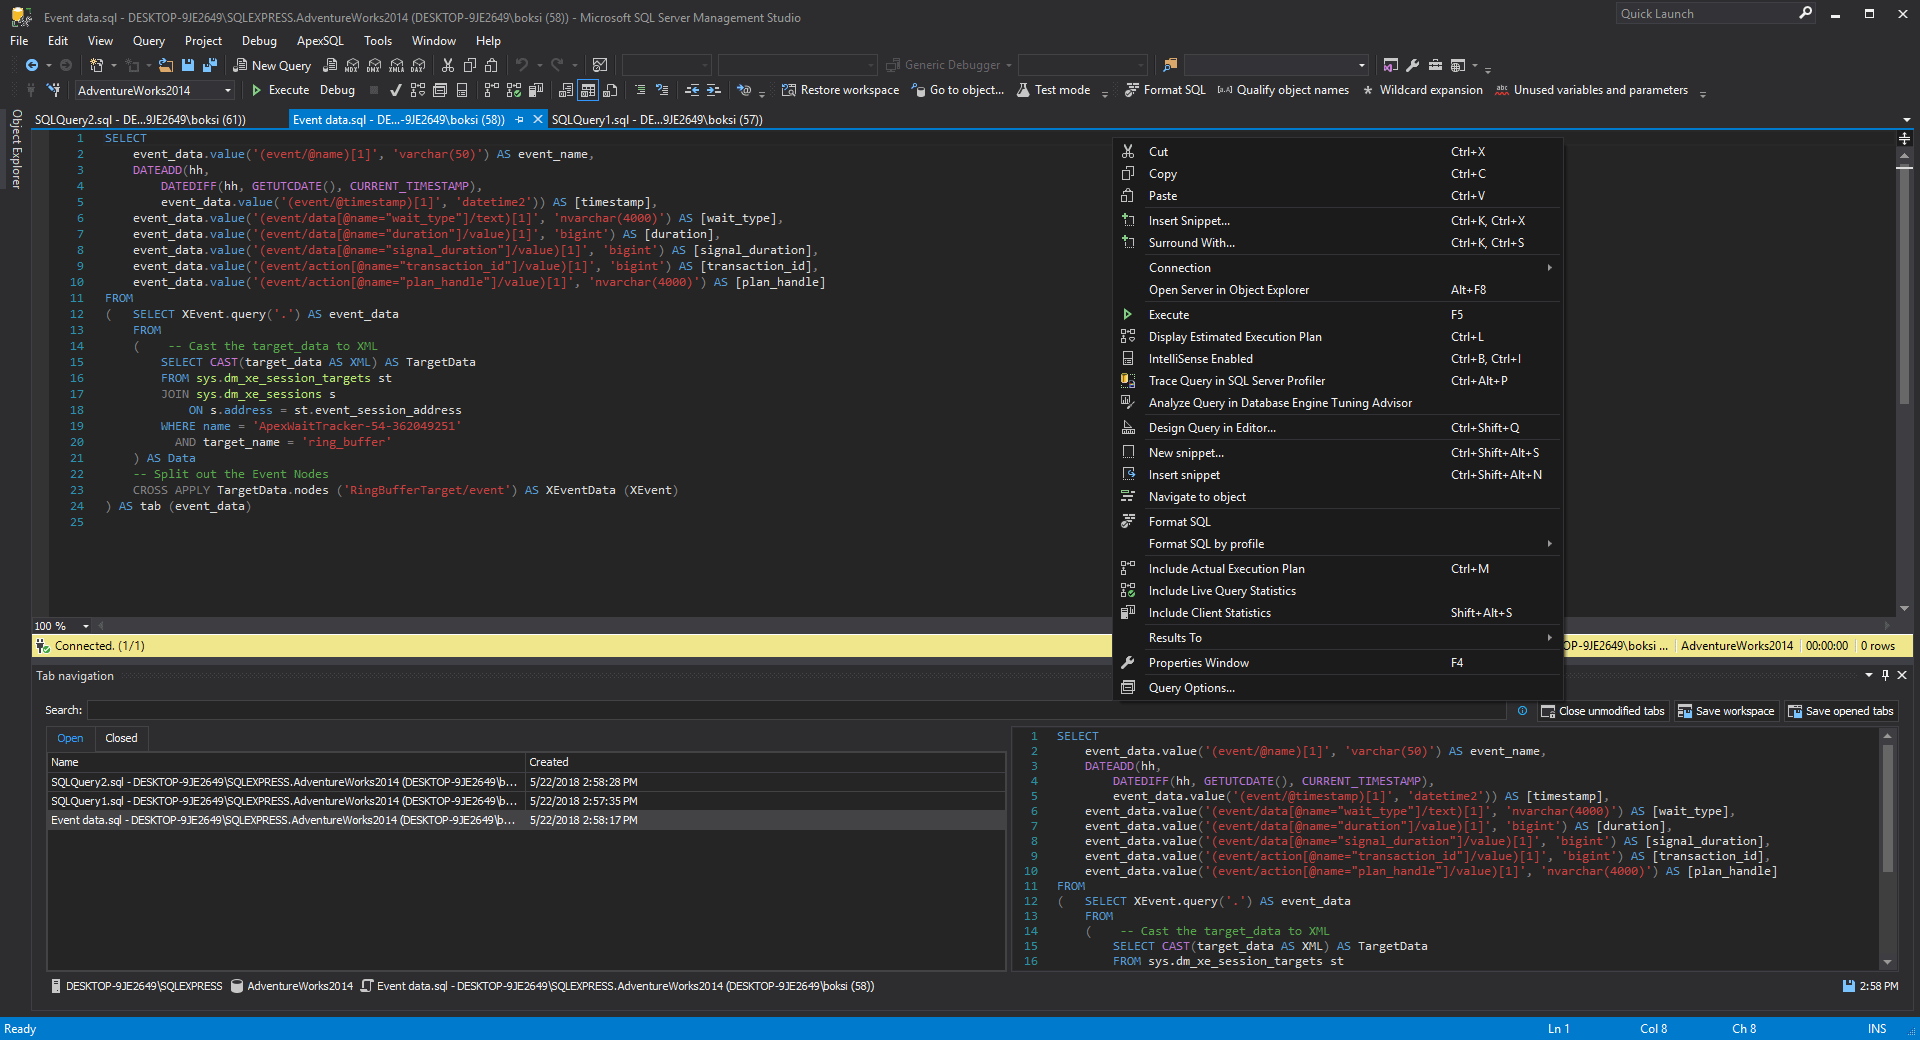 Tema Oscuro En Sql Server Management Studio